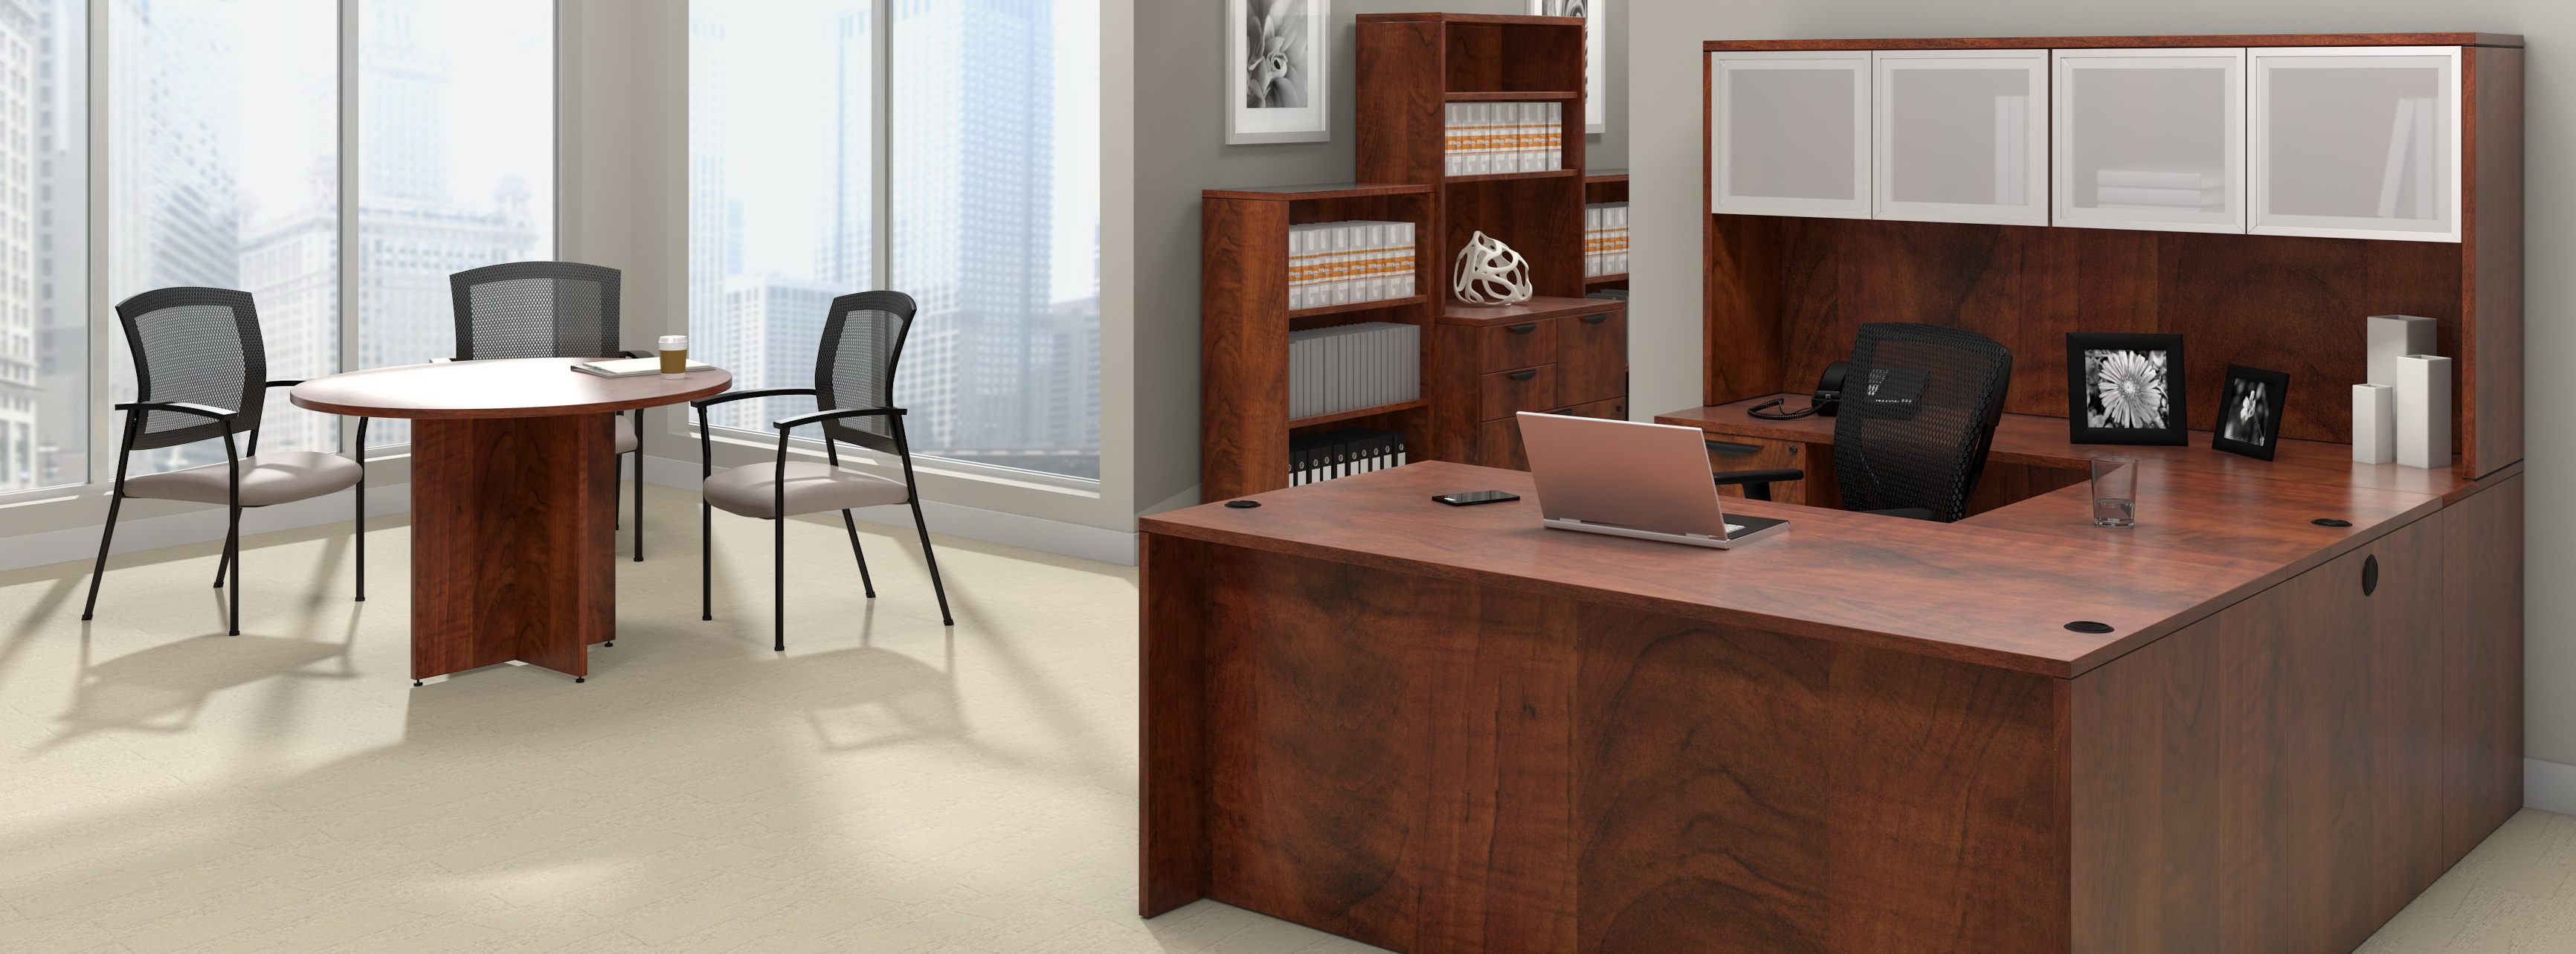 decoration furniture desk amazing phoenix finest used gallery online office